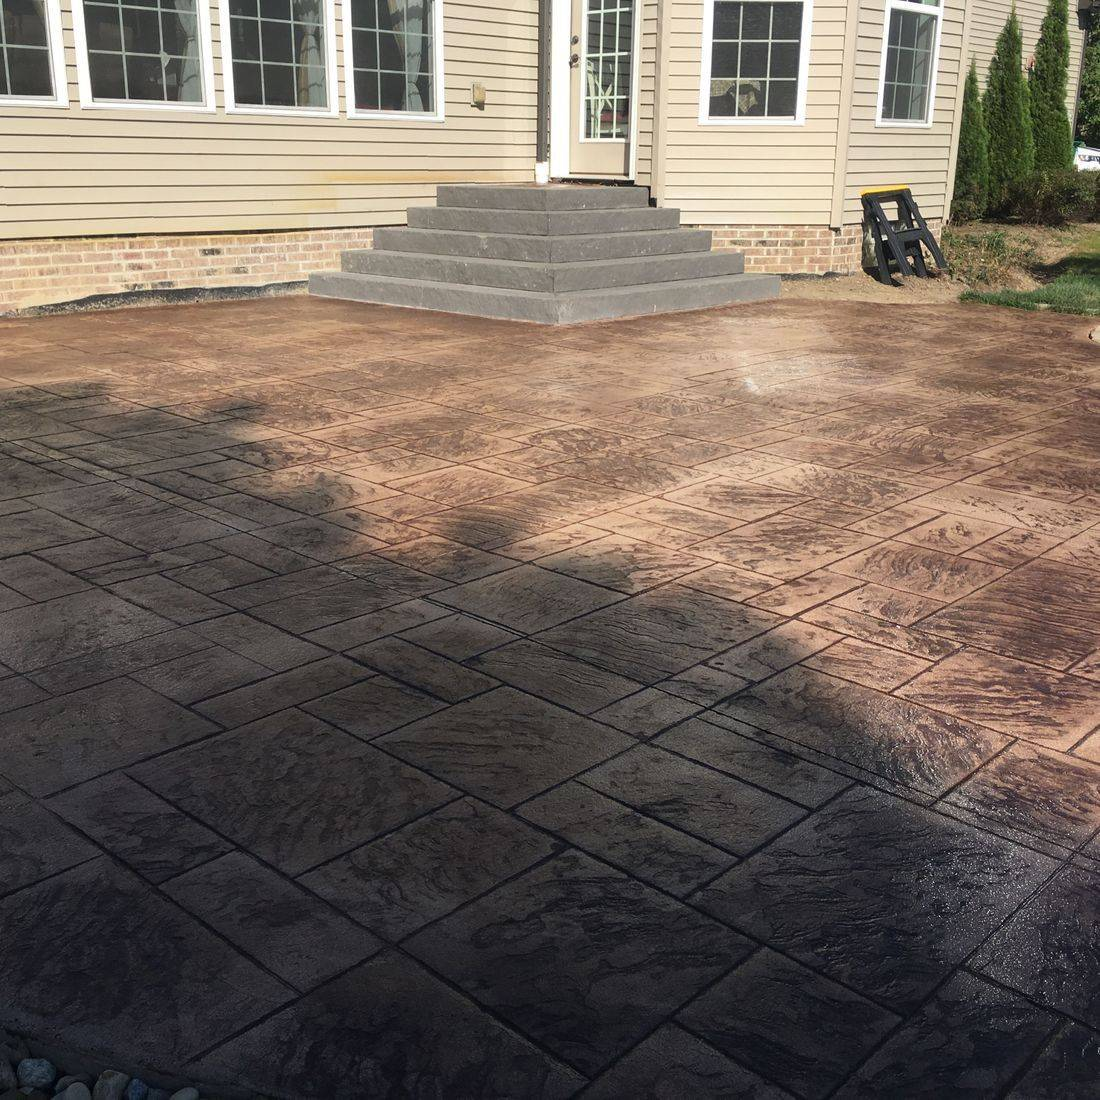 Concrete patio, stamped patio, colored concrete patio